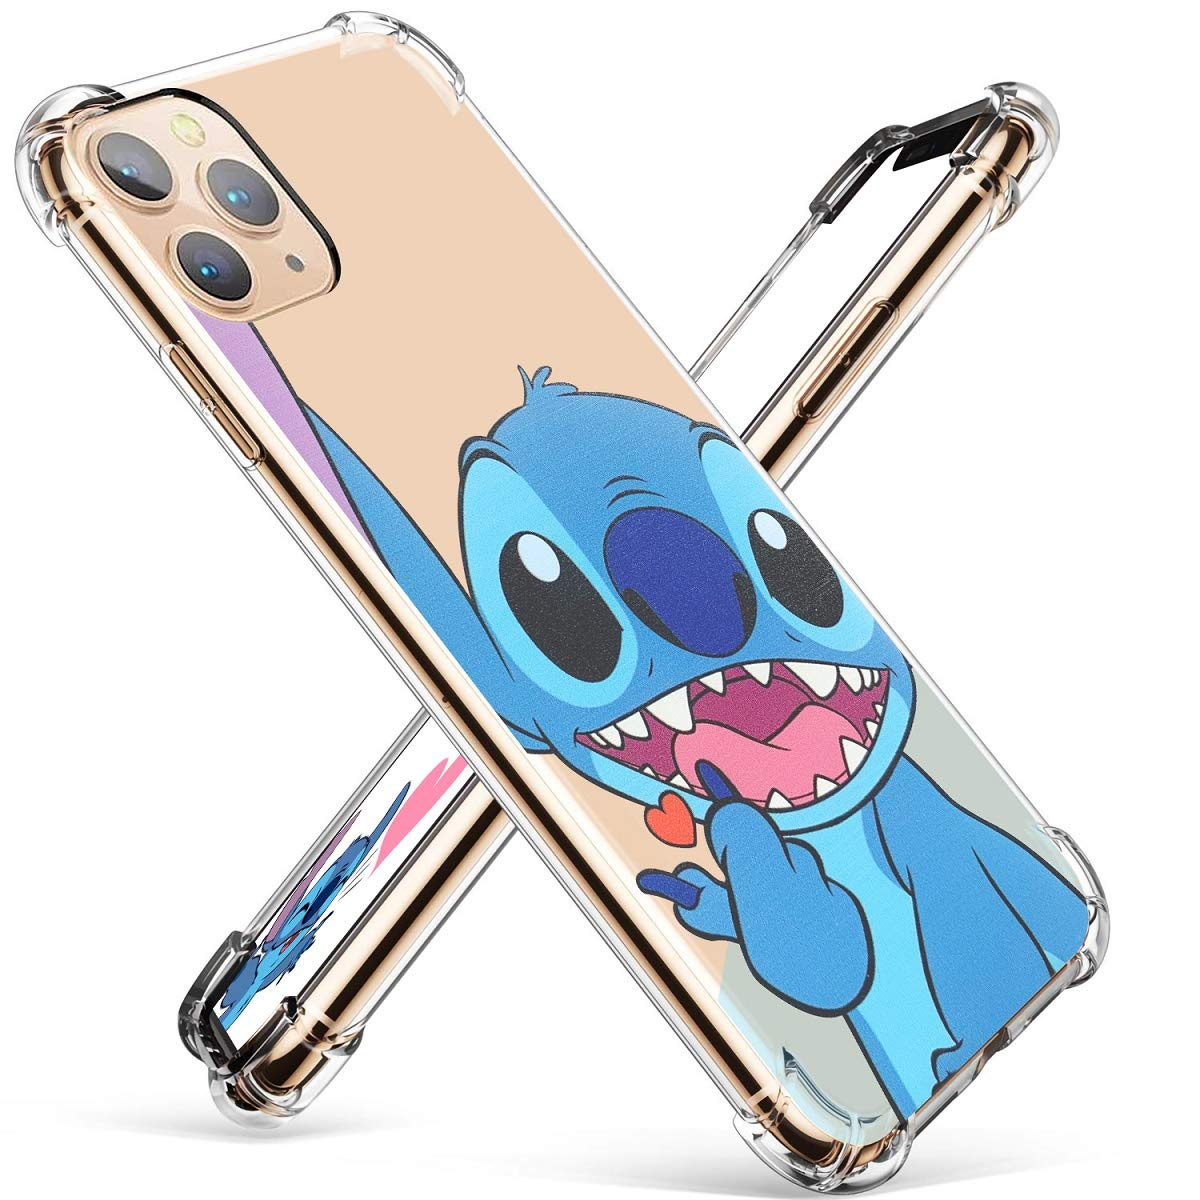 """Darrnew Heart Lilo Case for iPhone 12 Pro Max Cartoon TPU Cute 3D Fun Cover, Kawaii Unique Kids Girls Women Cases, Funny Ultra-Thin Bumper Character Rubber Skin Shockproof for iPhone 12 Pro Max 6.7"""""""